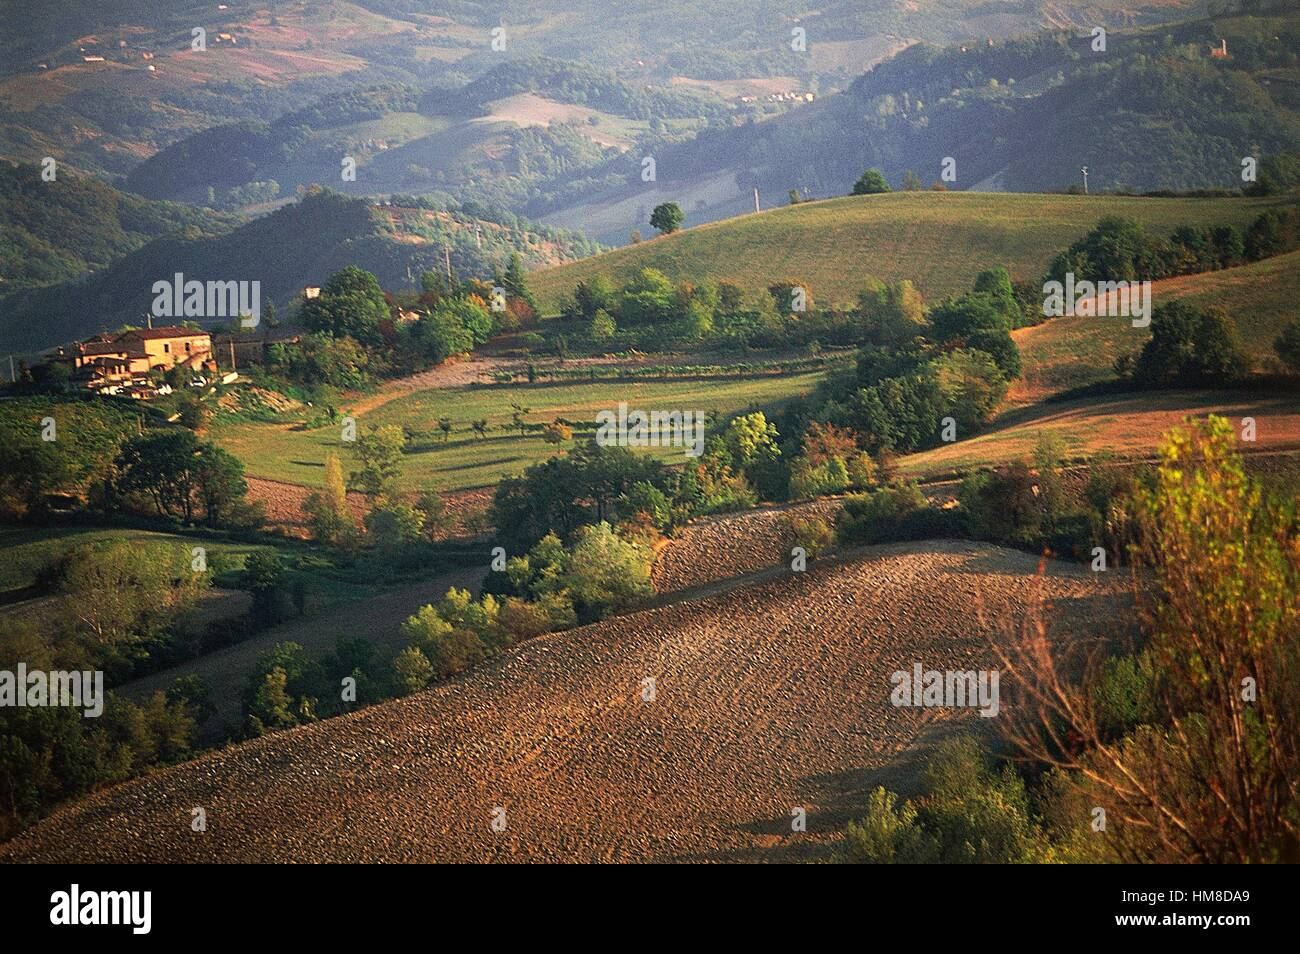 Agricultural landscape and farmstead between Castel San Pietro Terme and Sassoleone, Emilia-Romagna, Italy. - Stock Image